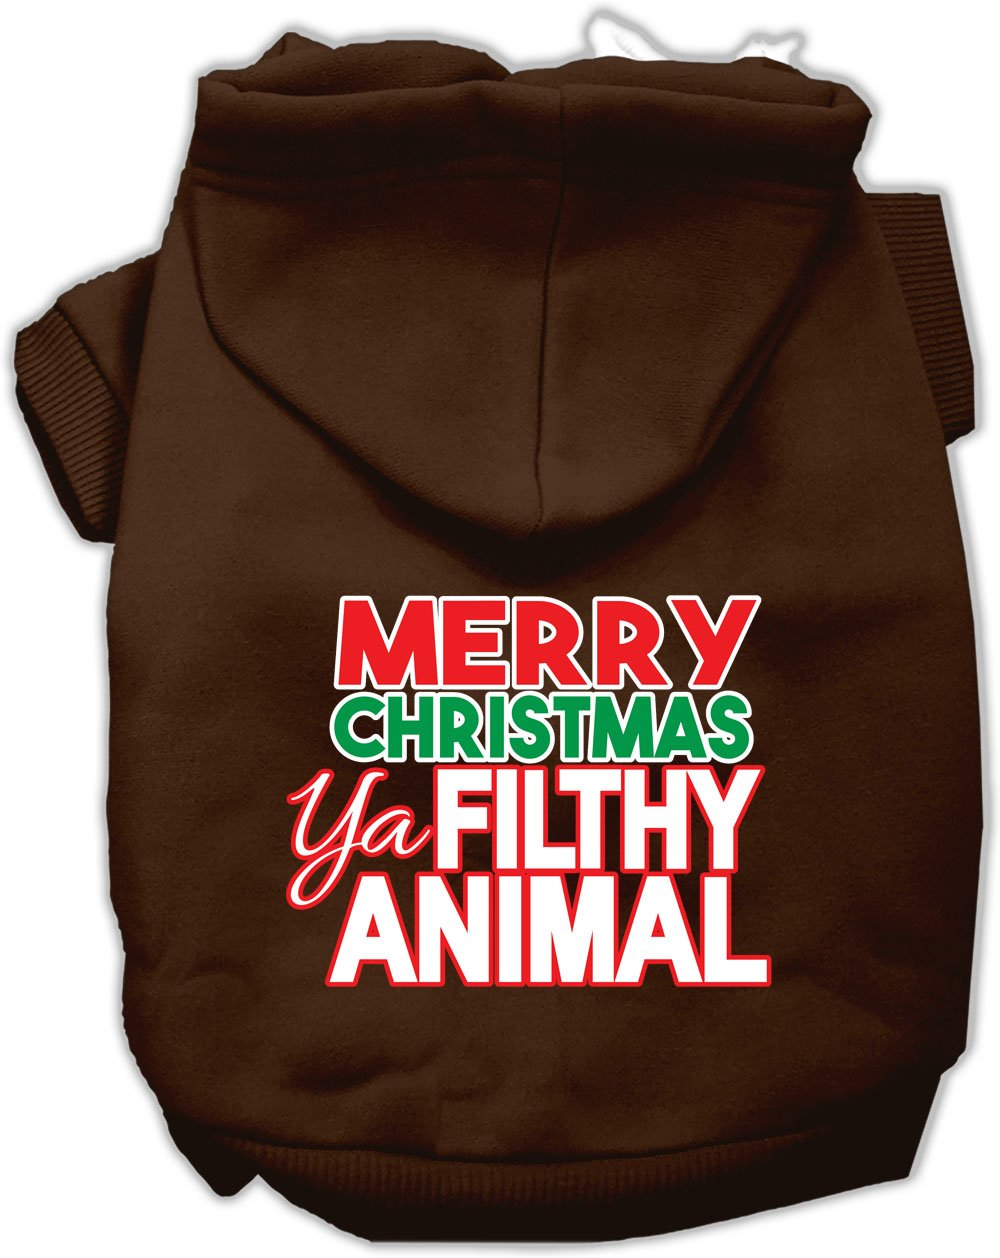 Mirage Pet Products 62-148 XLBR Ya Filthy Animal Screen Print Brown Pet Hoodie, X-Large